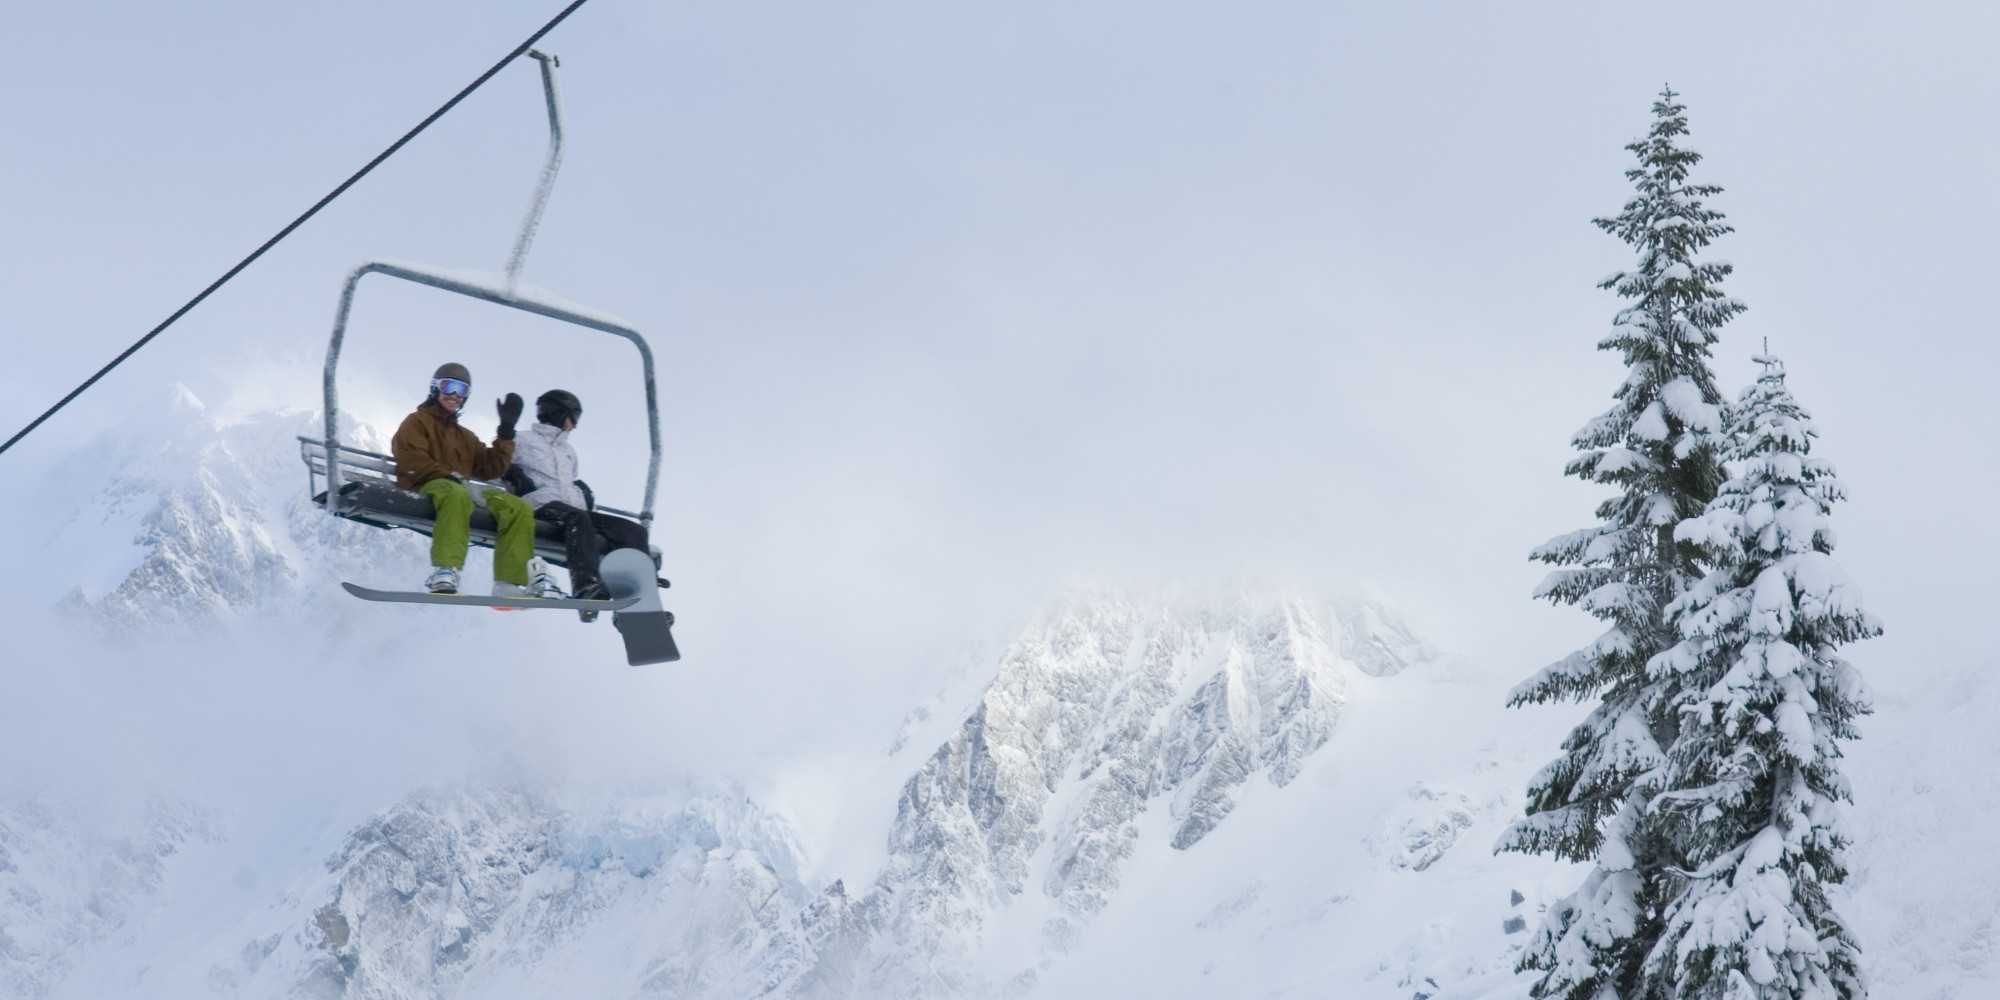 On ski lifts and the human condition the huffington post